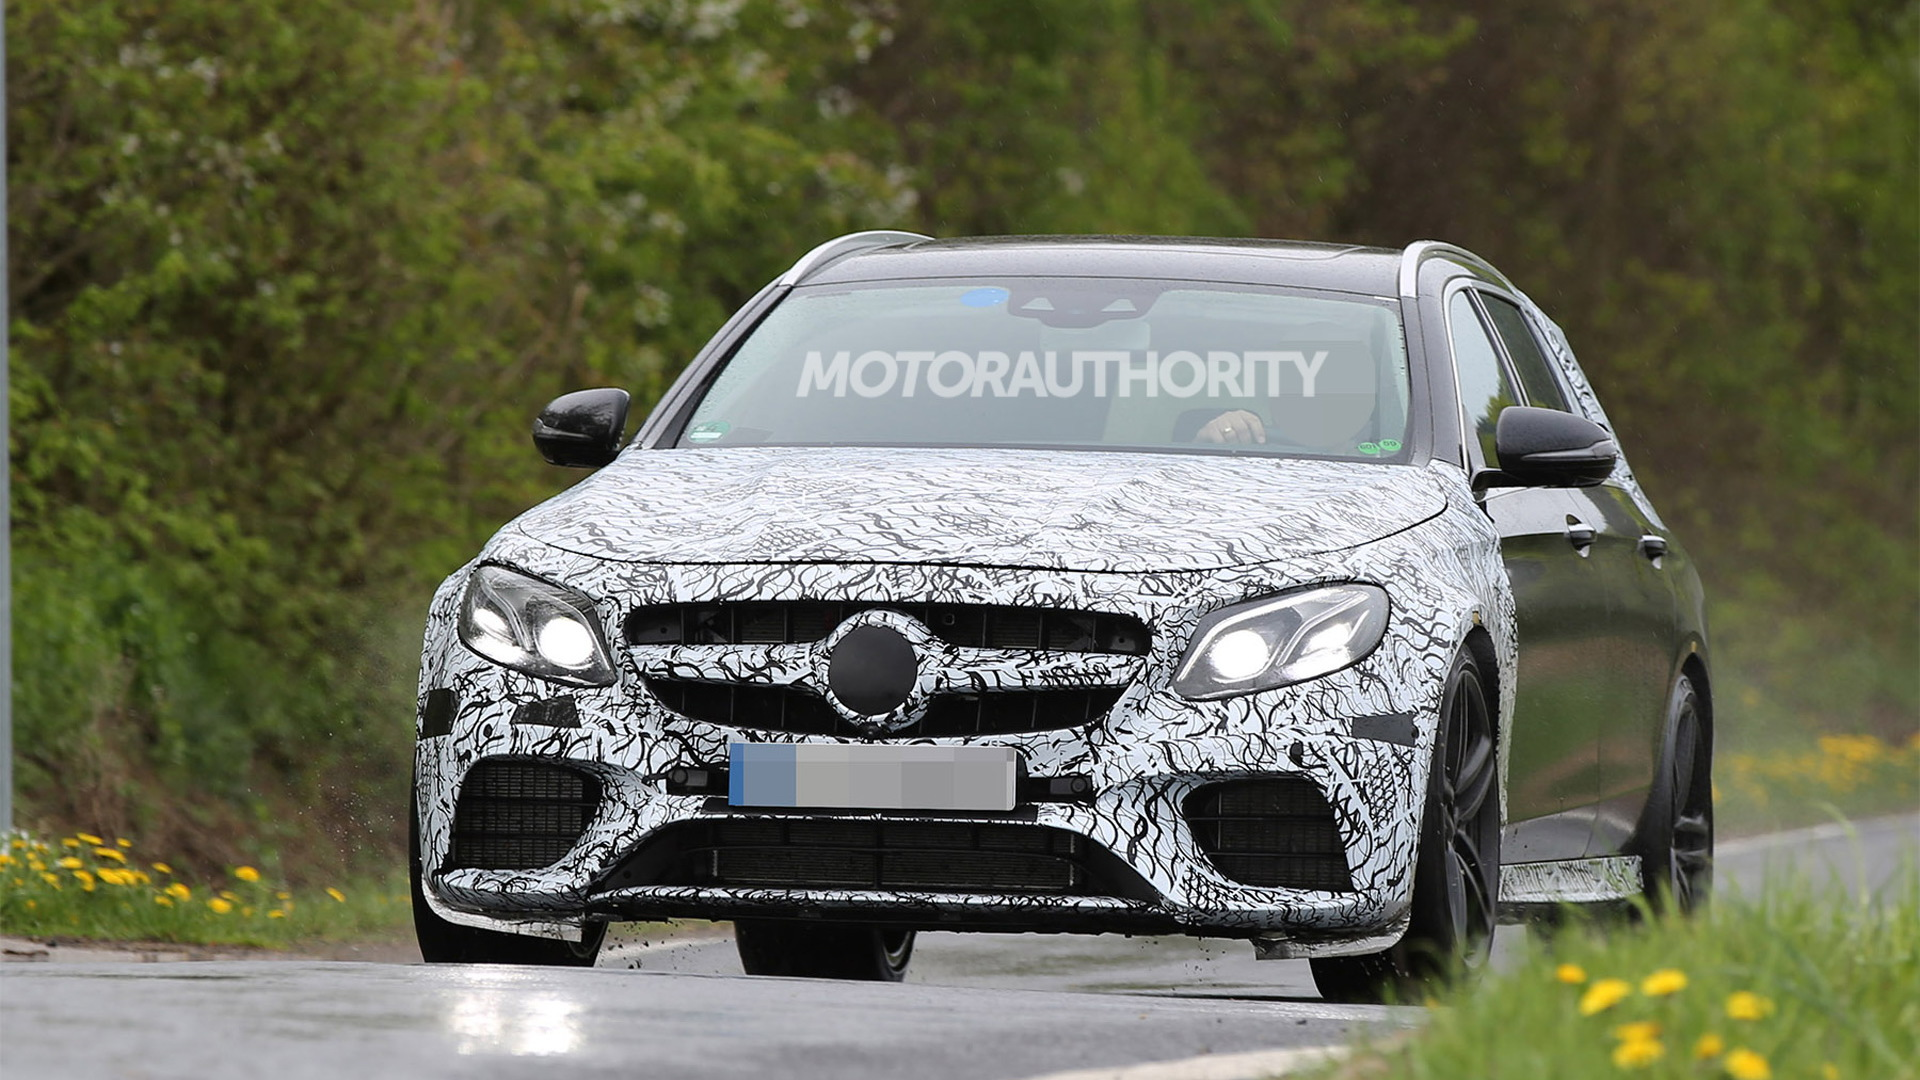 2017 Mercedes-AMG E63 Wagon (Estate) spy shots - Image via S. Baldauf/SB-Medien